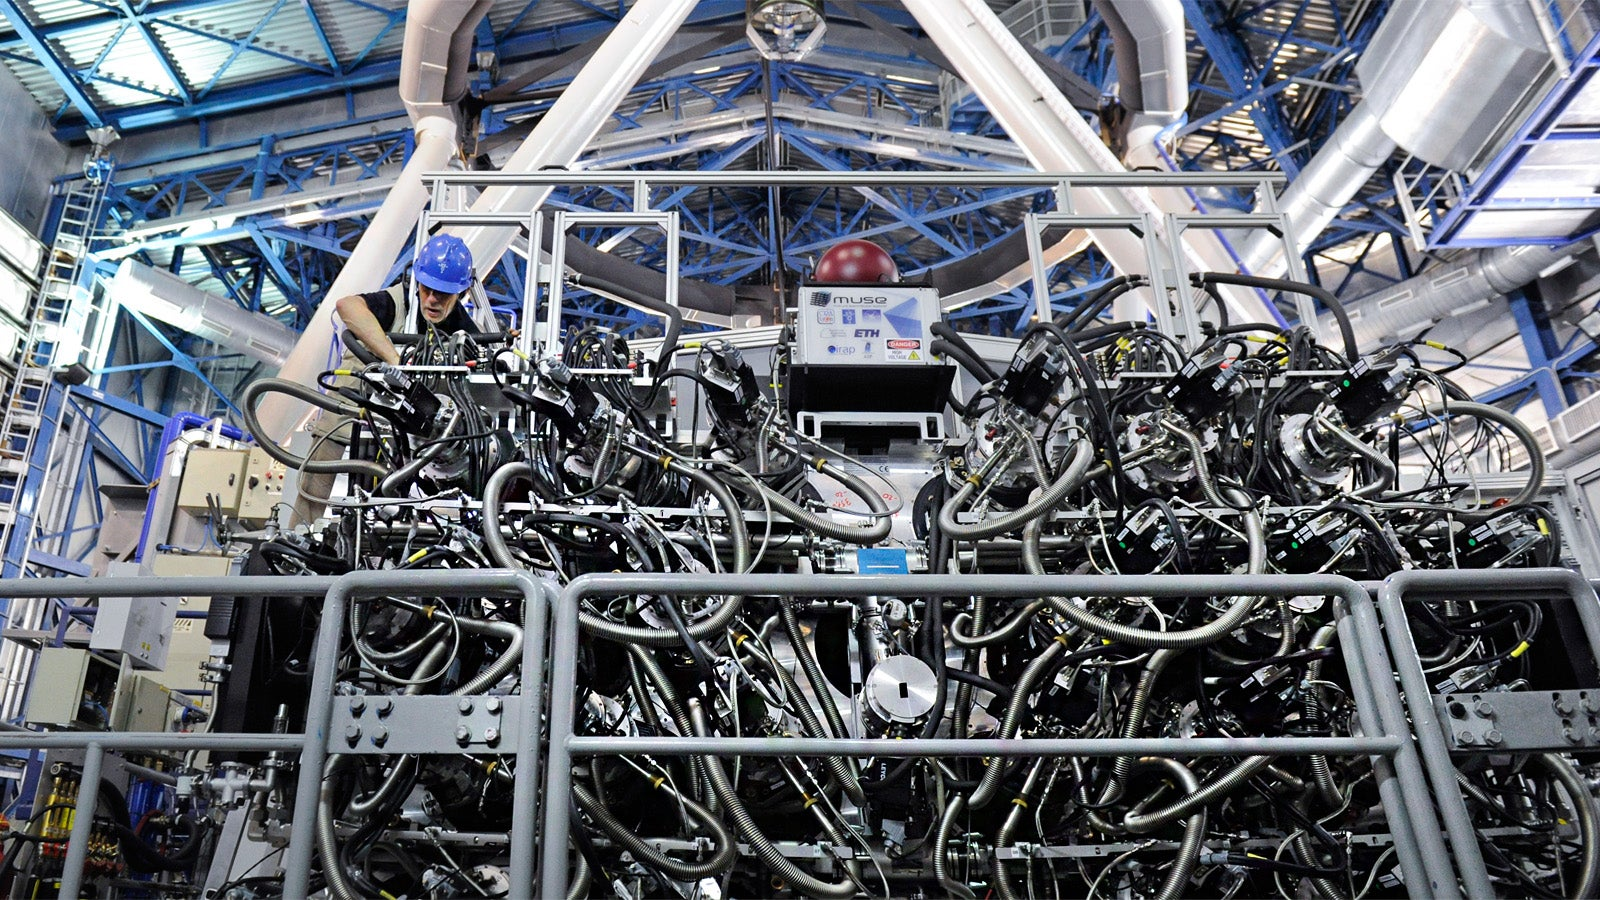 This Tangled Mess Is Helping Scientists Study The Early Universe